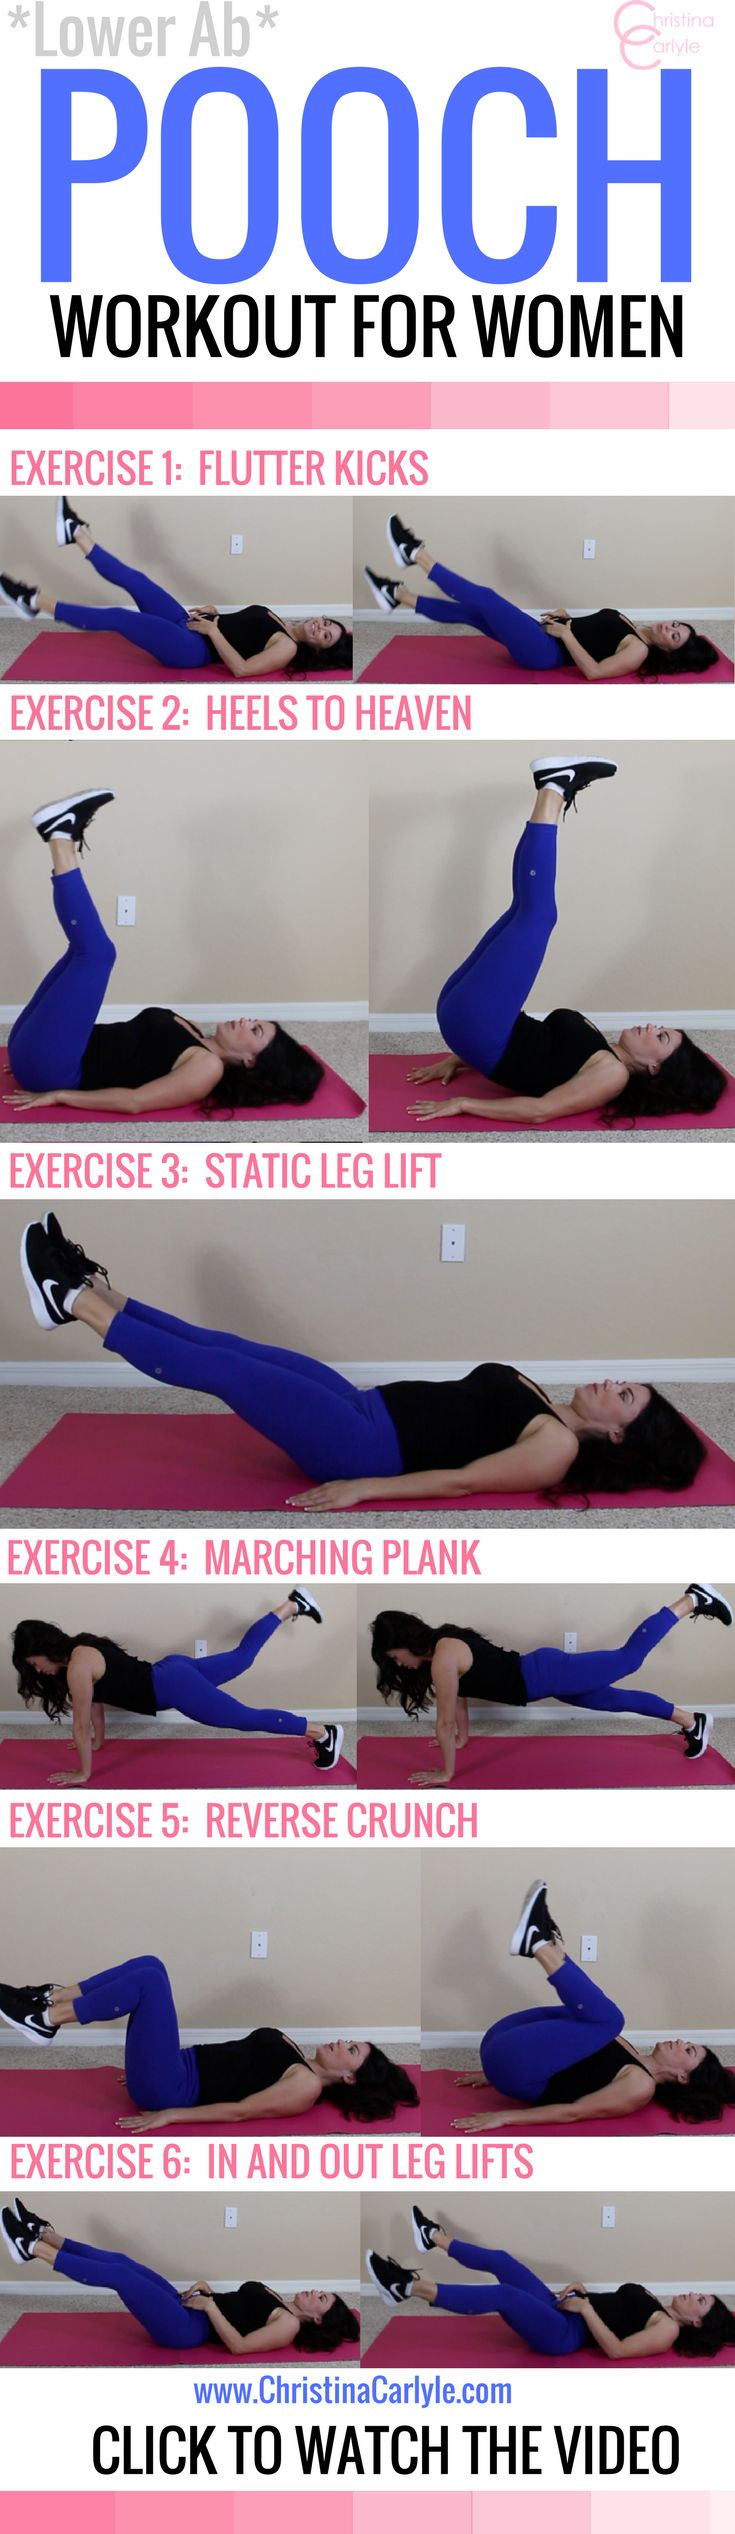 Lower ab pooch workout for women